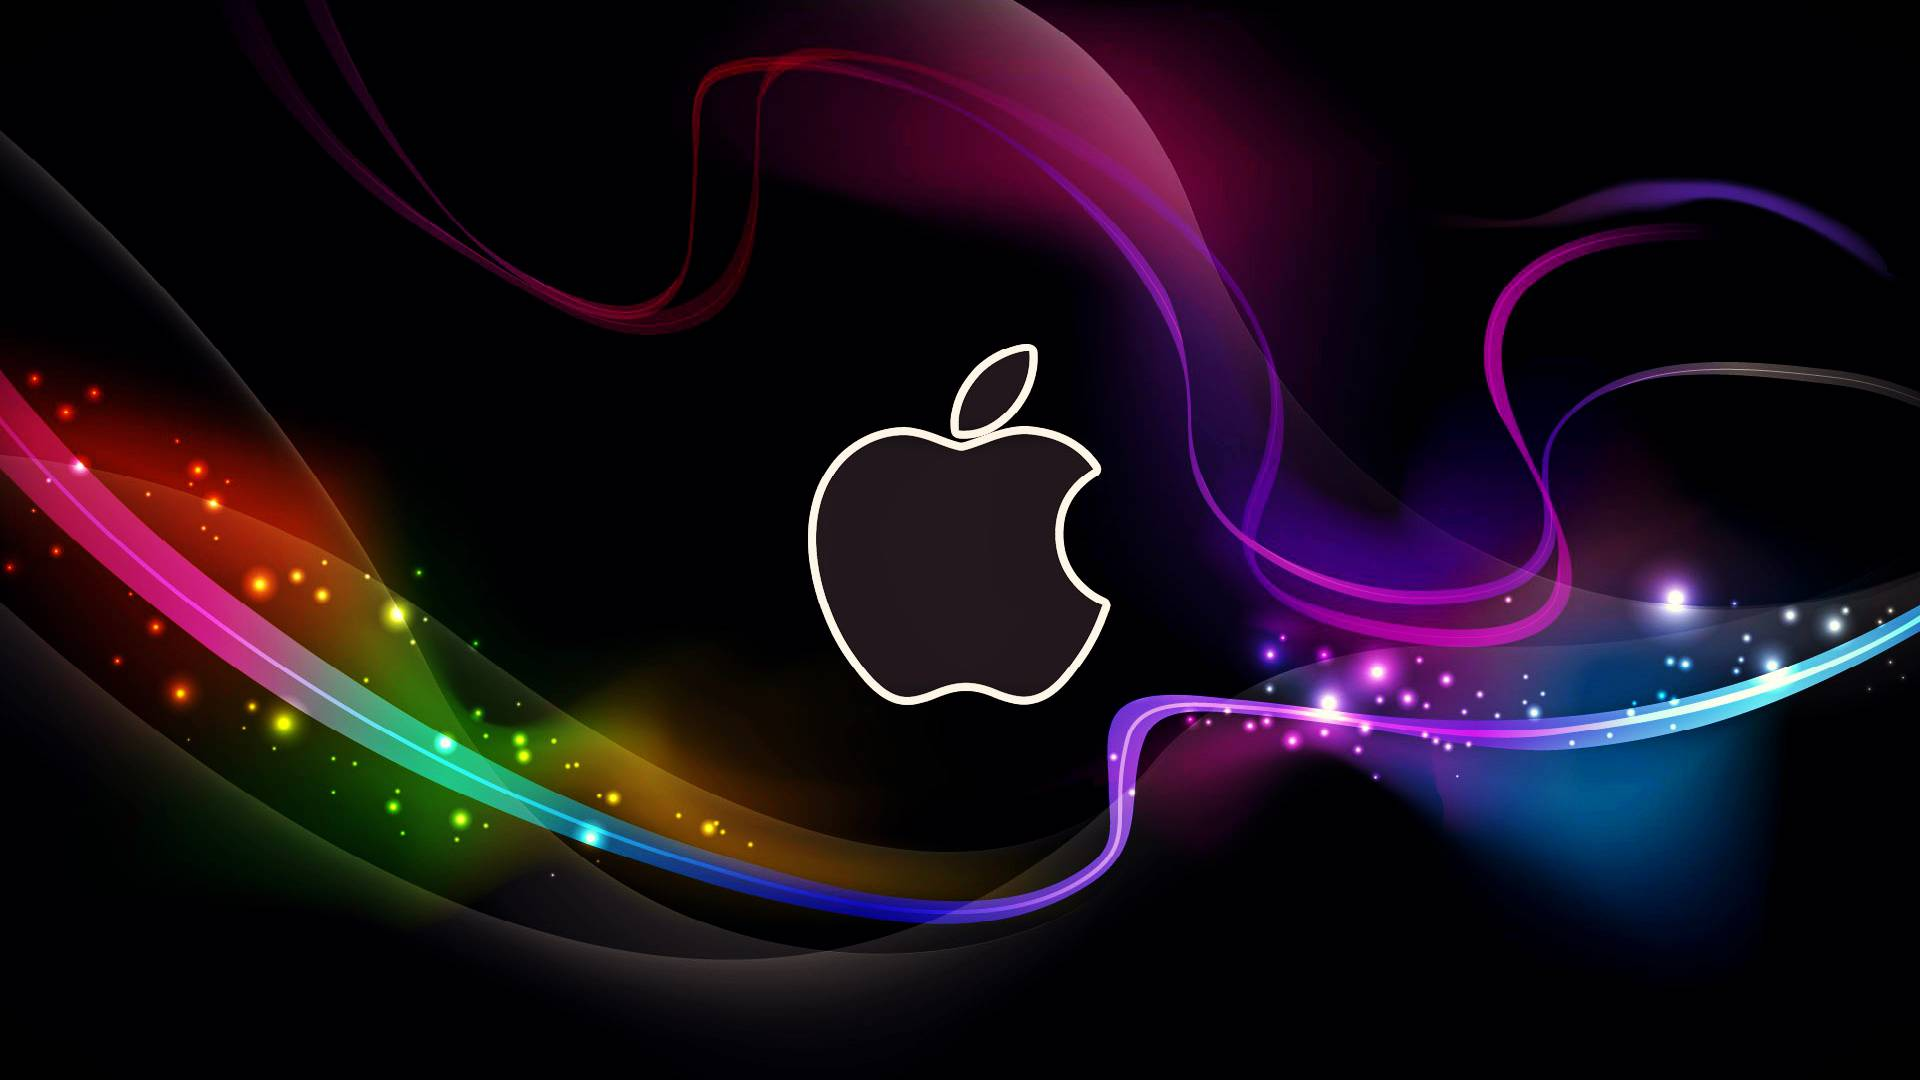 cool apple logo wallpapers wallpaper cave